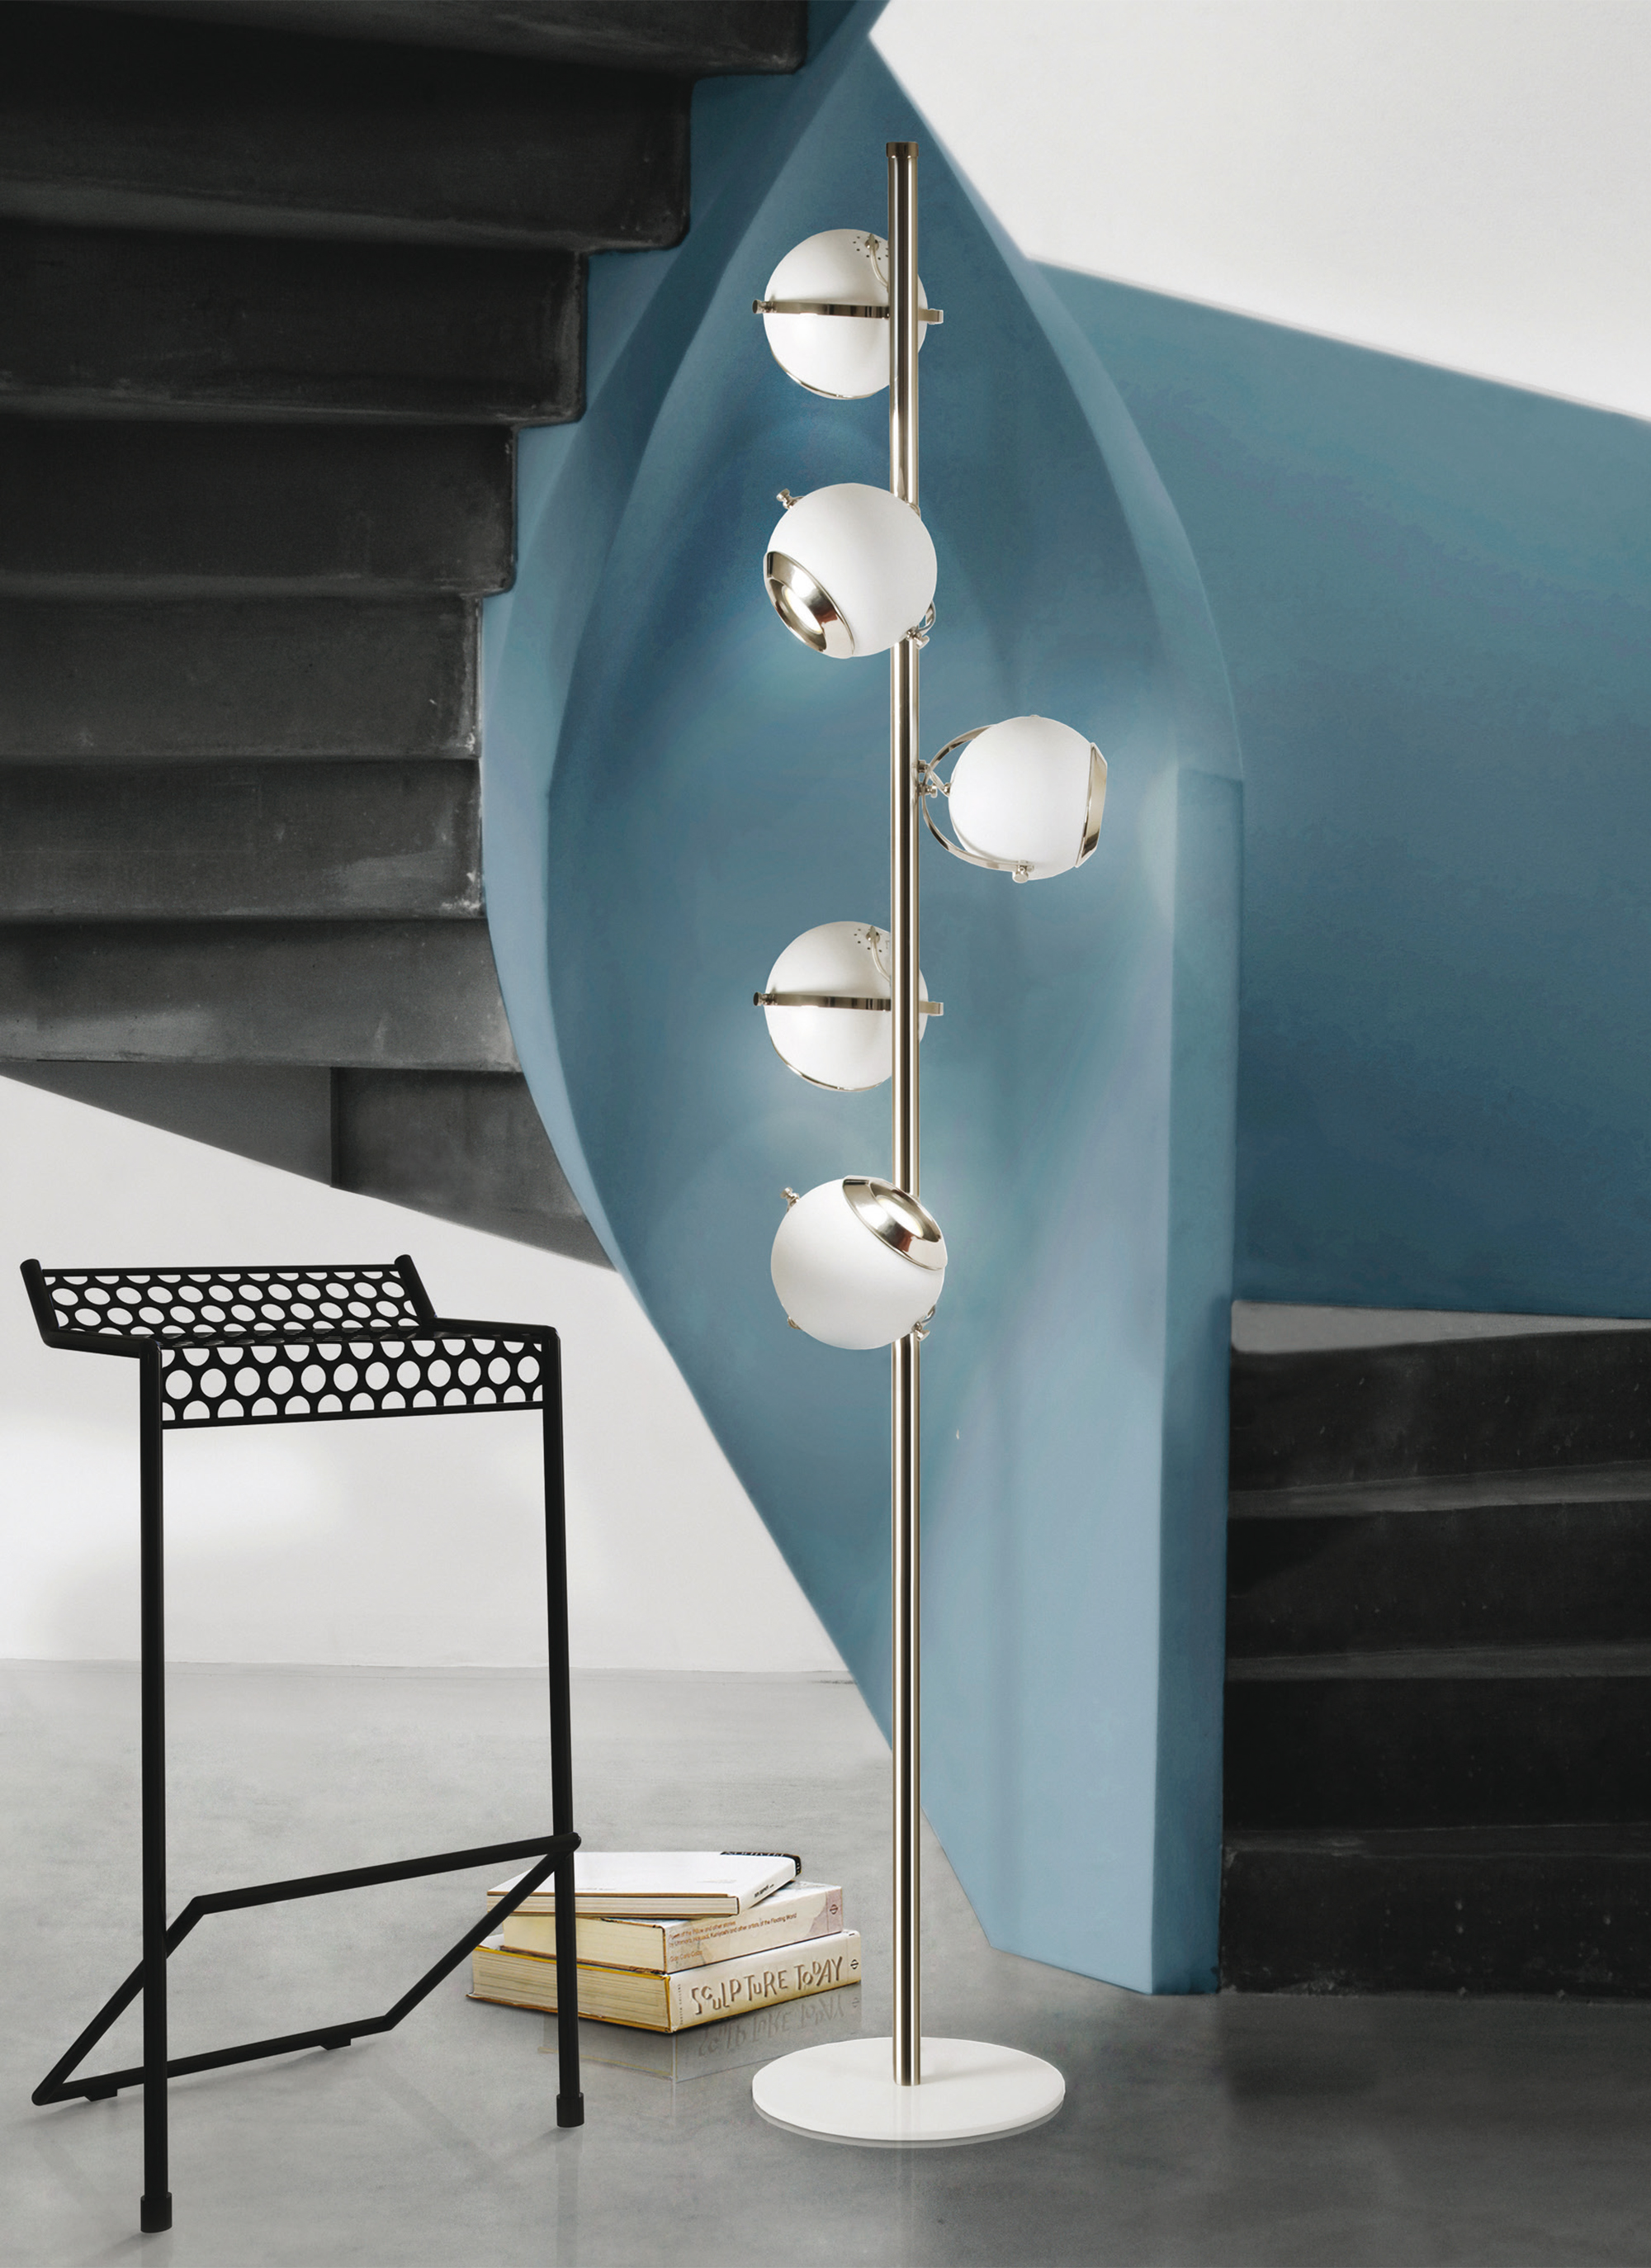 Ready To Get Your Dream Home With This Mid-Century Lamps?